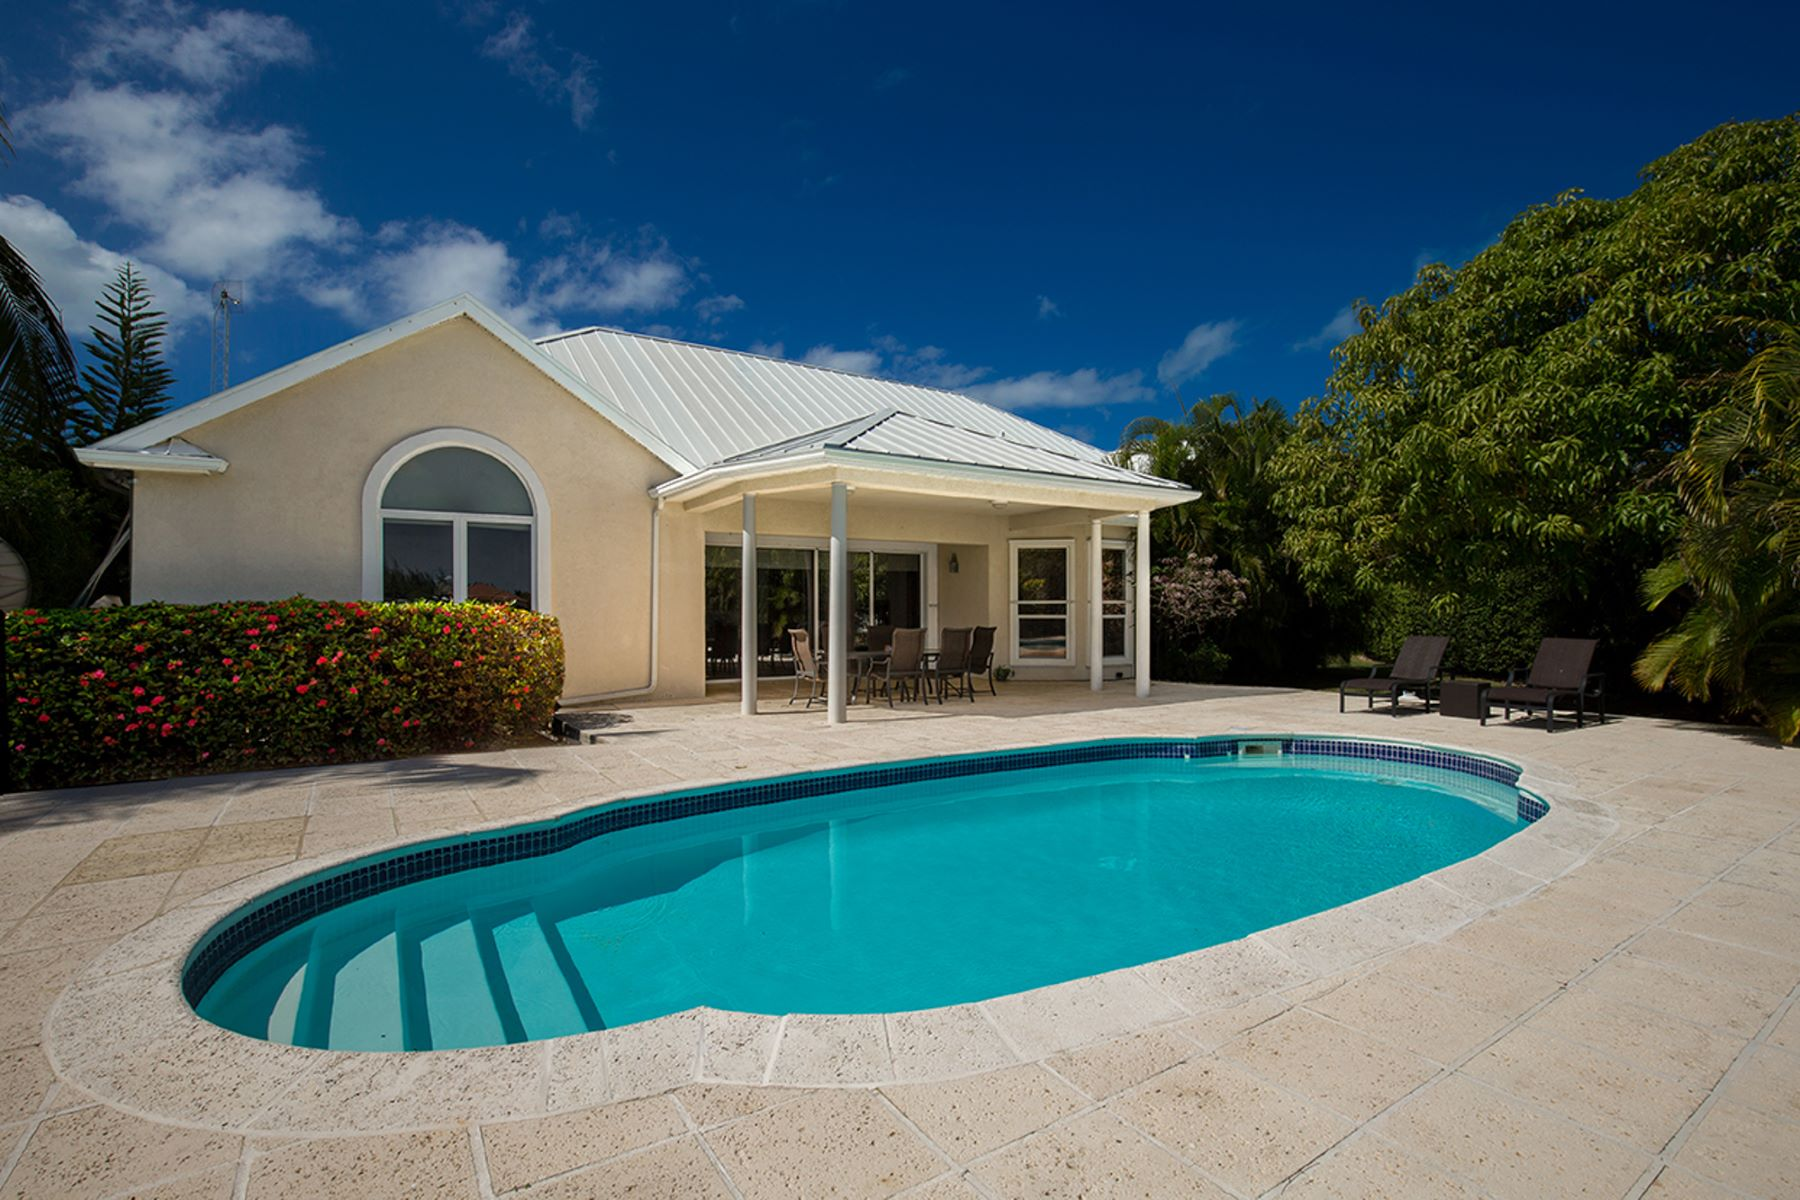 Additional photo for property listing at Patrick's Island Executive Villa Other Cayman Islands, Otras Áreas En Las Islas Caimán Islas Caimán